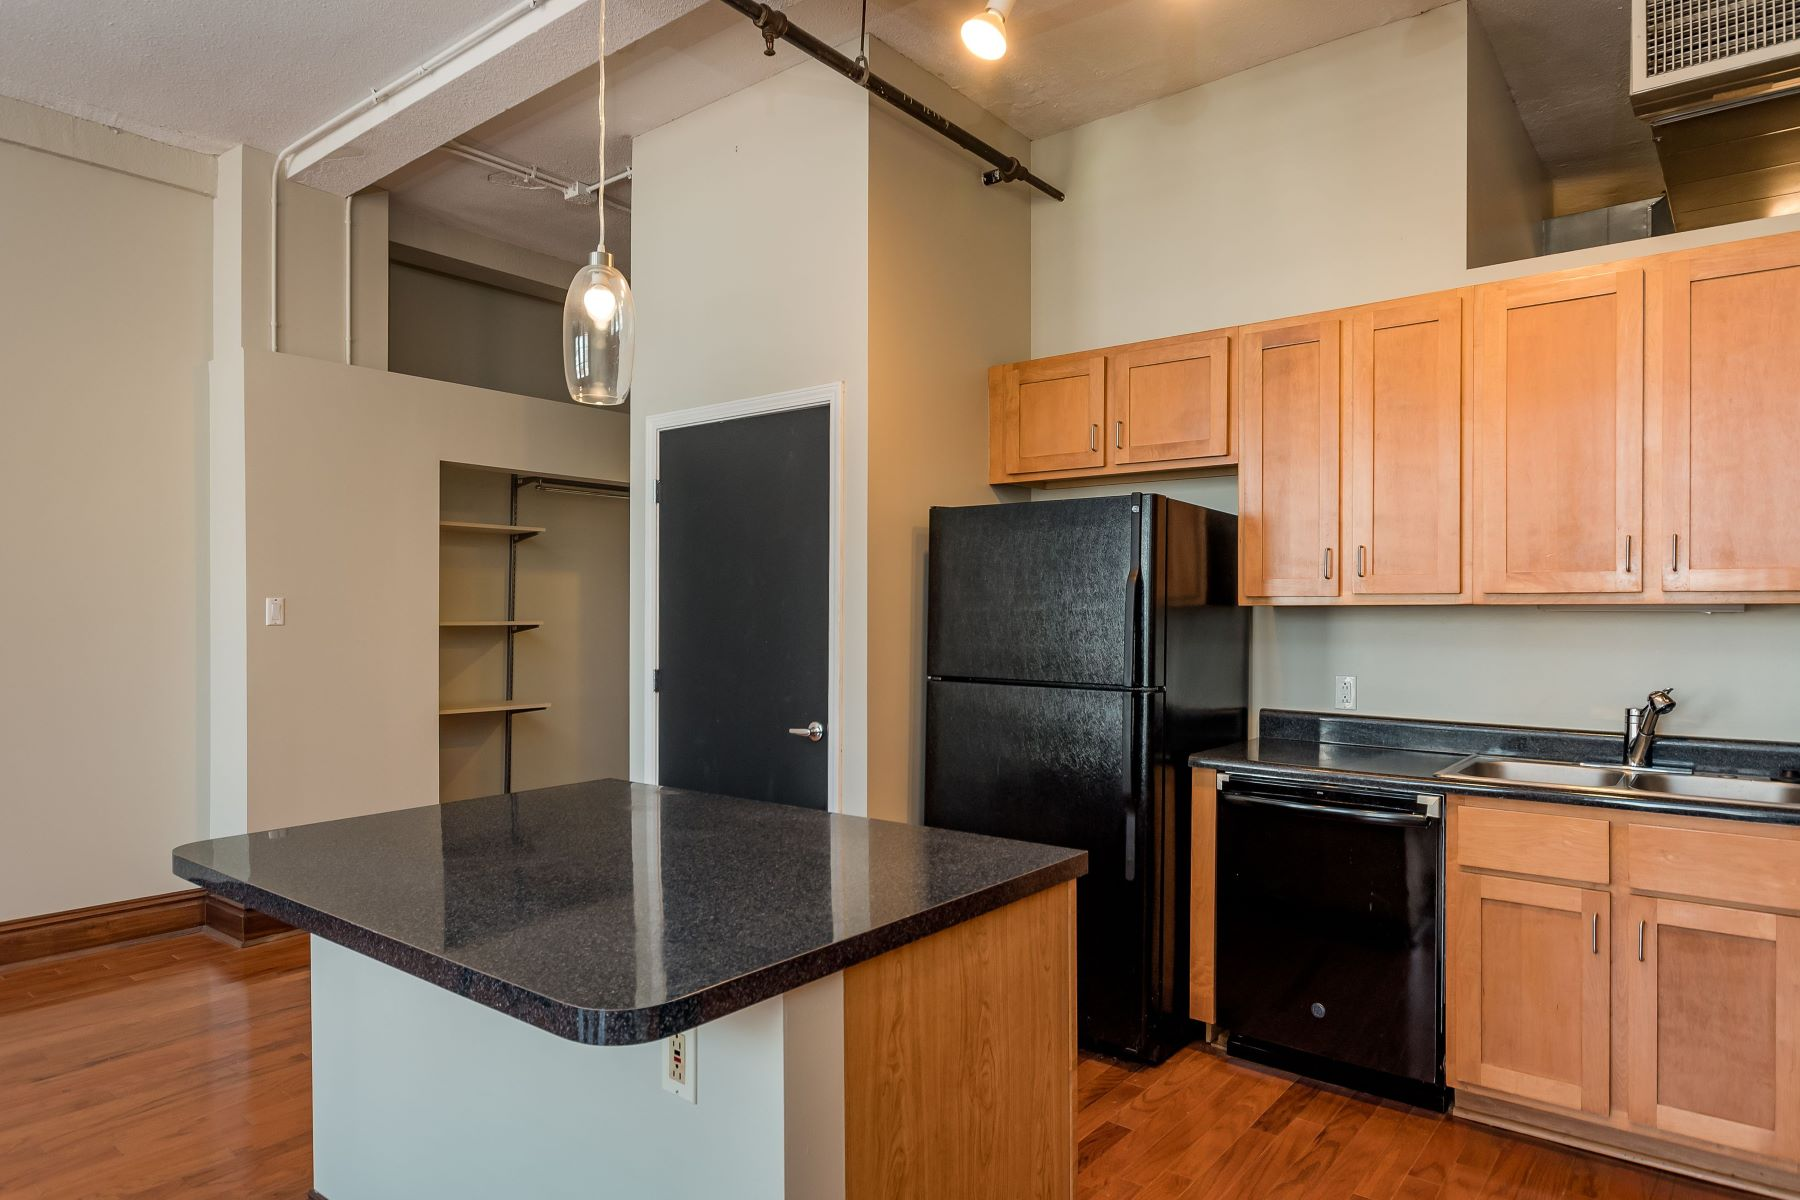 Additional photo for property listing at Locust Loft Living 1501 Locust Street #501 St. Louis, Missouri 63103 United States